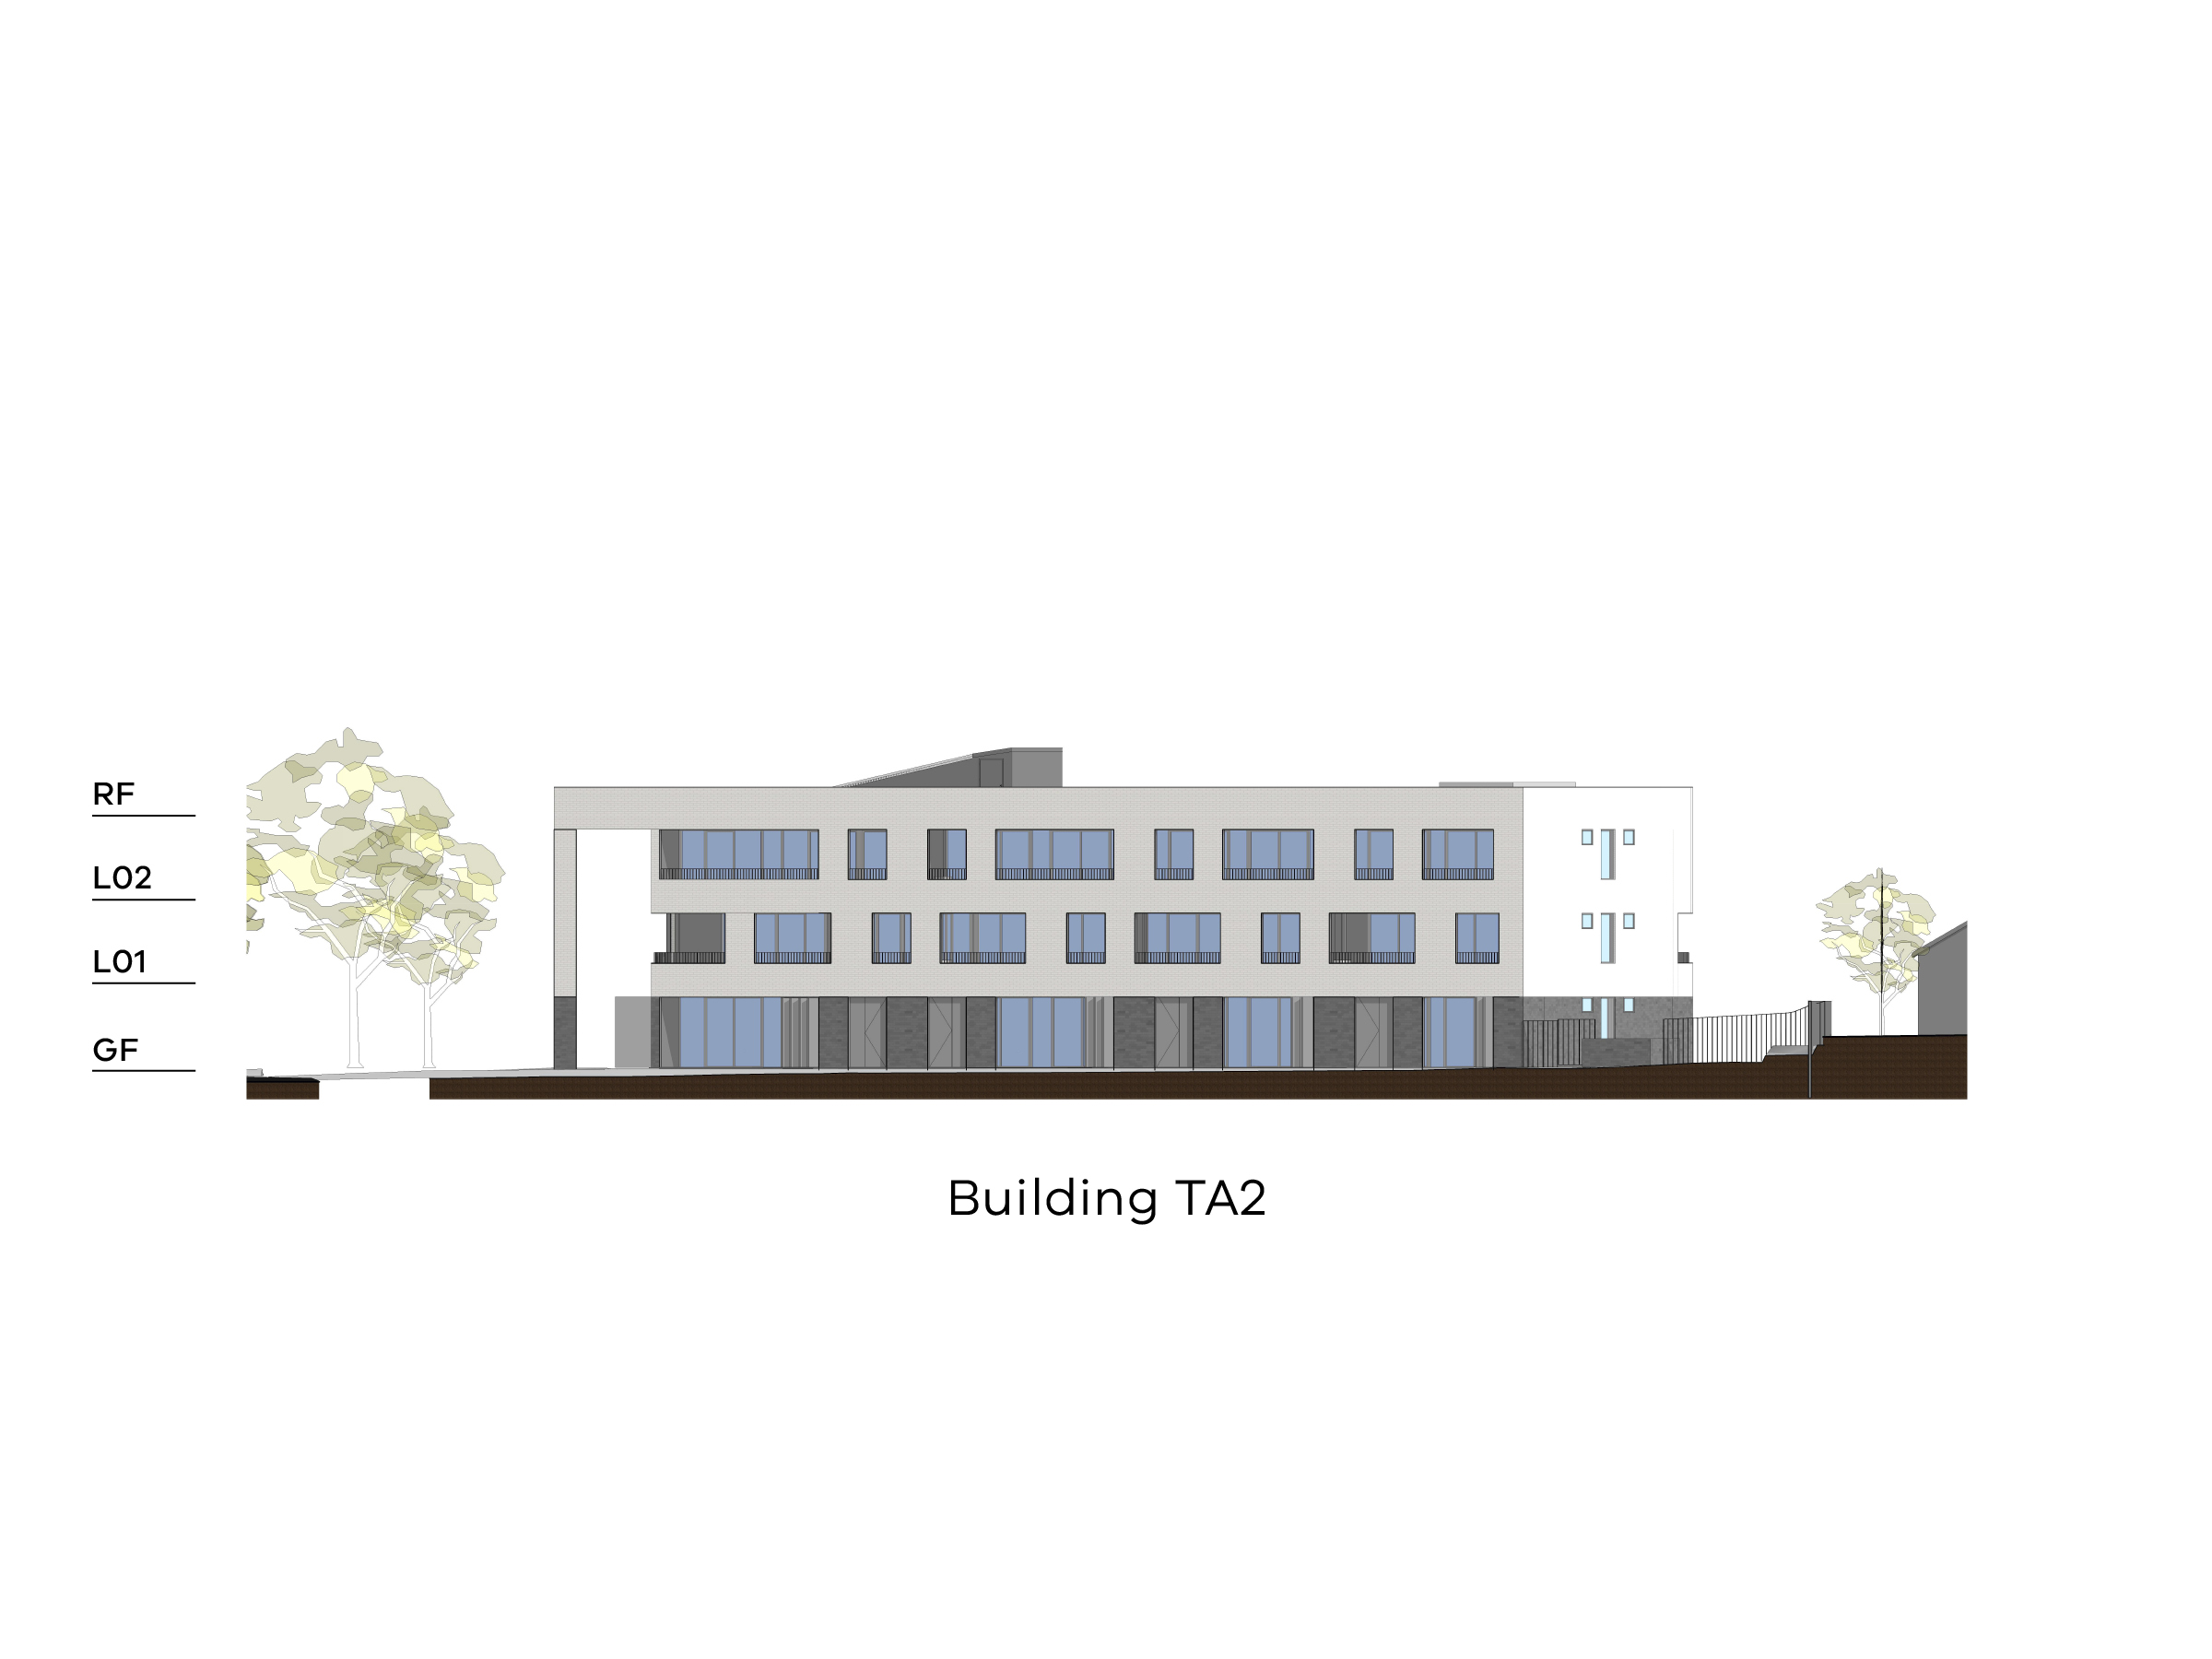 Diagram showing the height of the southern part of building TA2 as seen from the on-site park looking towards Tobruk Avenue. Building TA2 has a ground floor, level 1-2 and a flat roof.